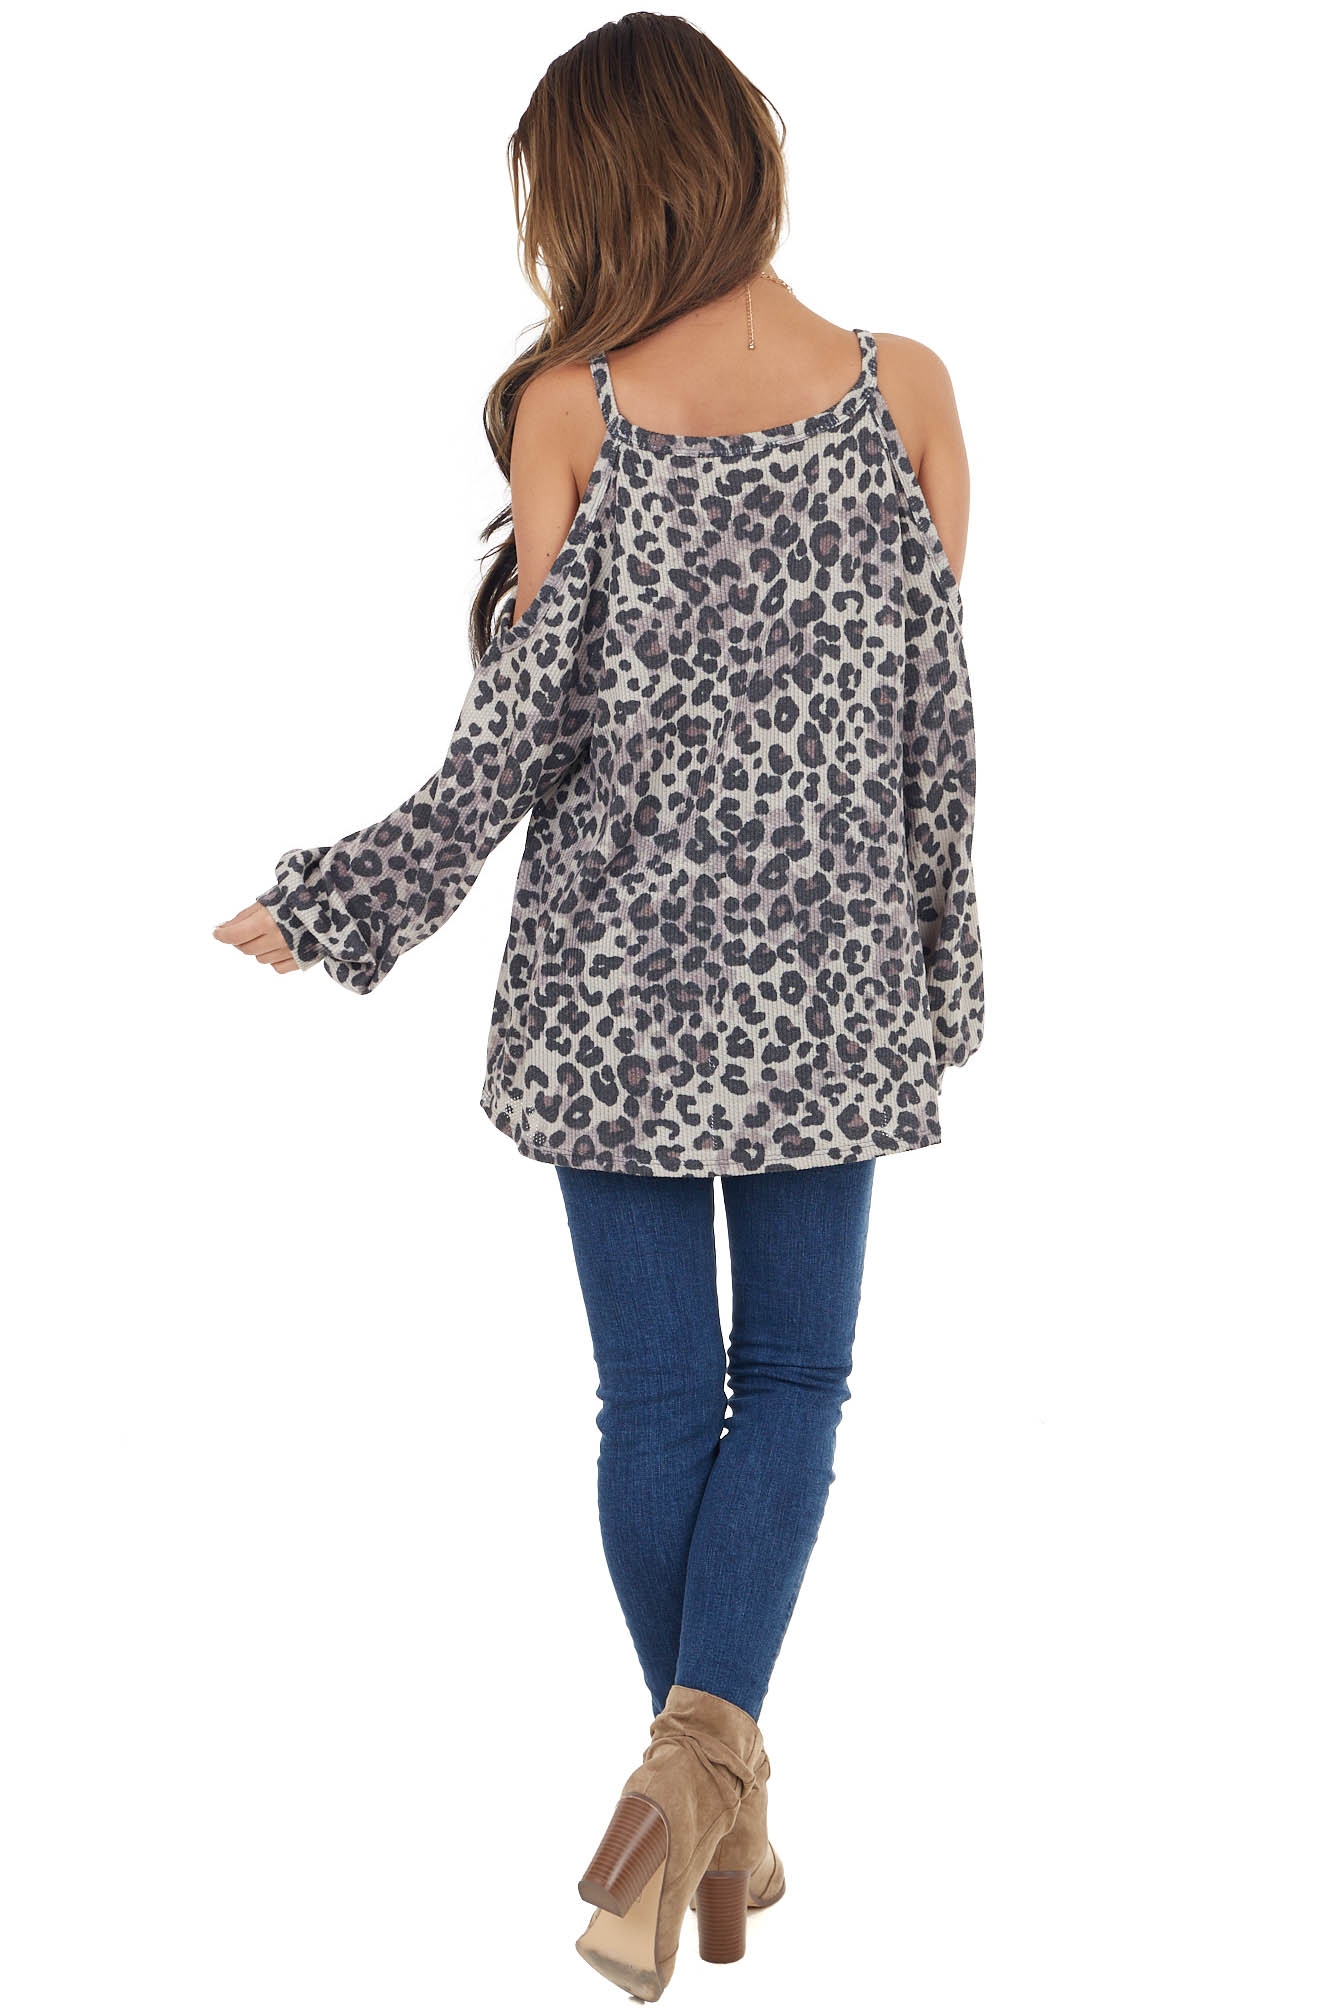 Oatmeal Leopard Print Long Sleeve Cold Shoulder Top